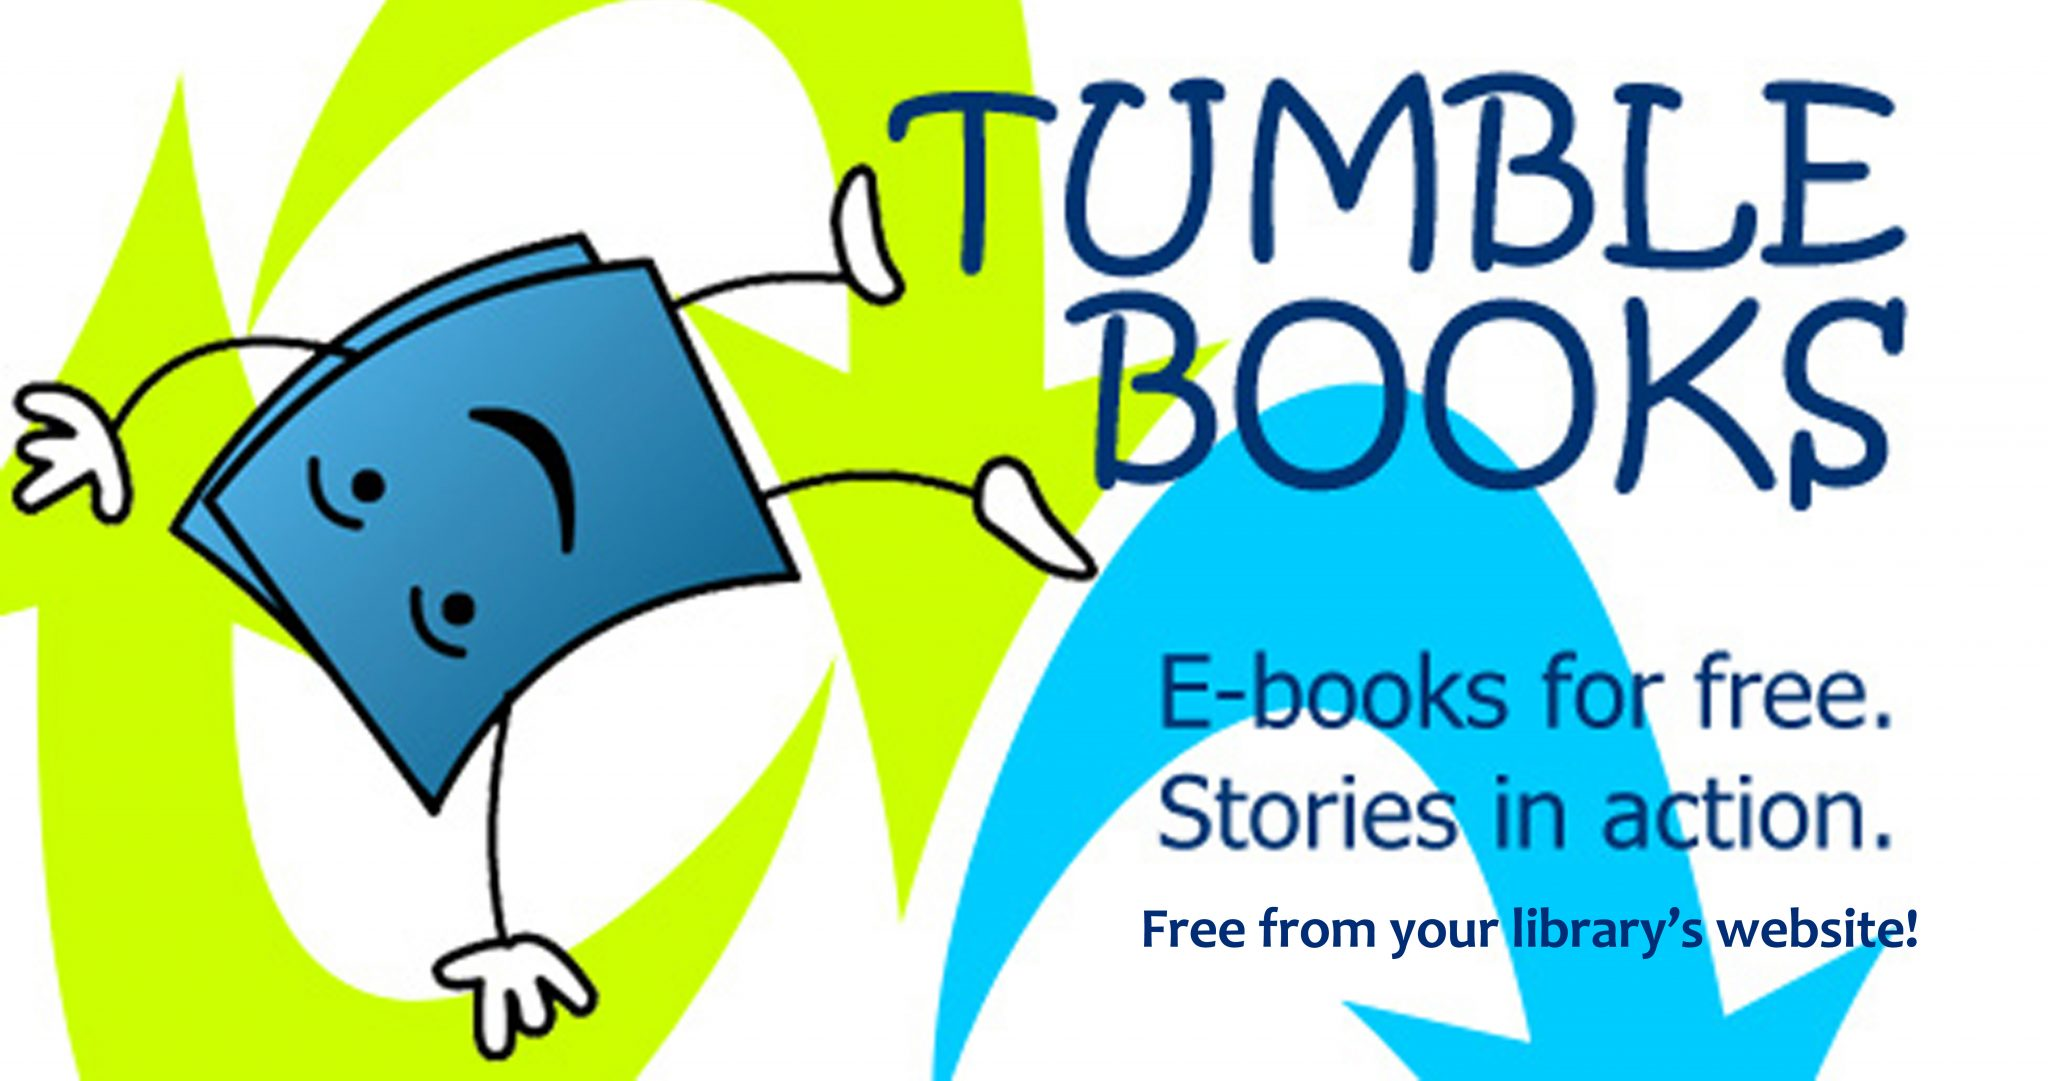 Worksheet Tumblebooks Reading tumblebooks help lycoming county children achieve reading goals did your child get a new digital device over the holidays such as tablet or ipad if youre looking for educational games and